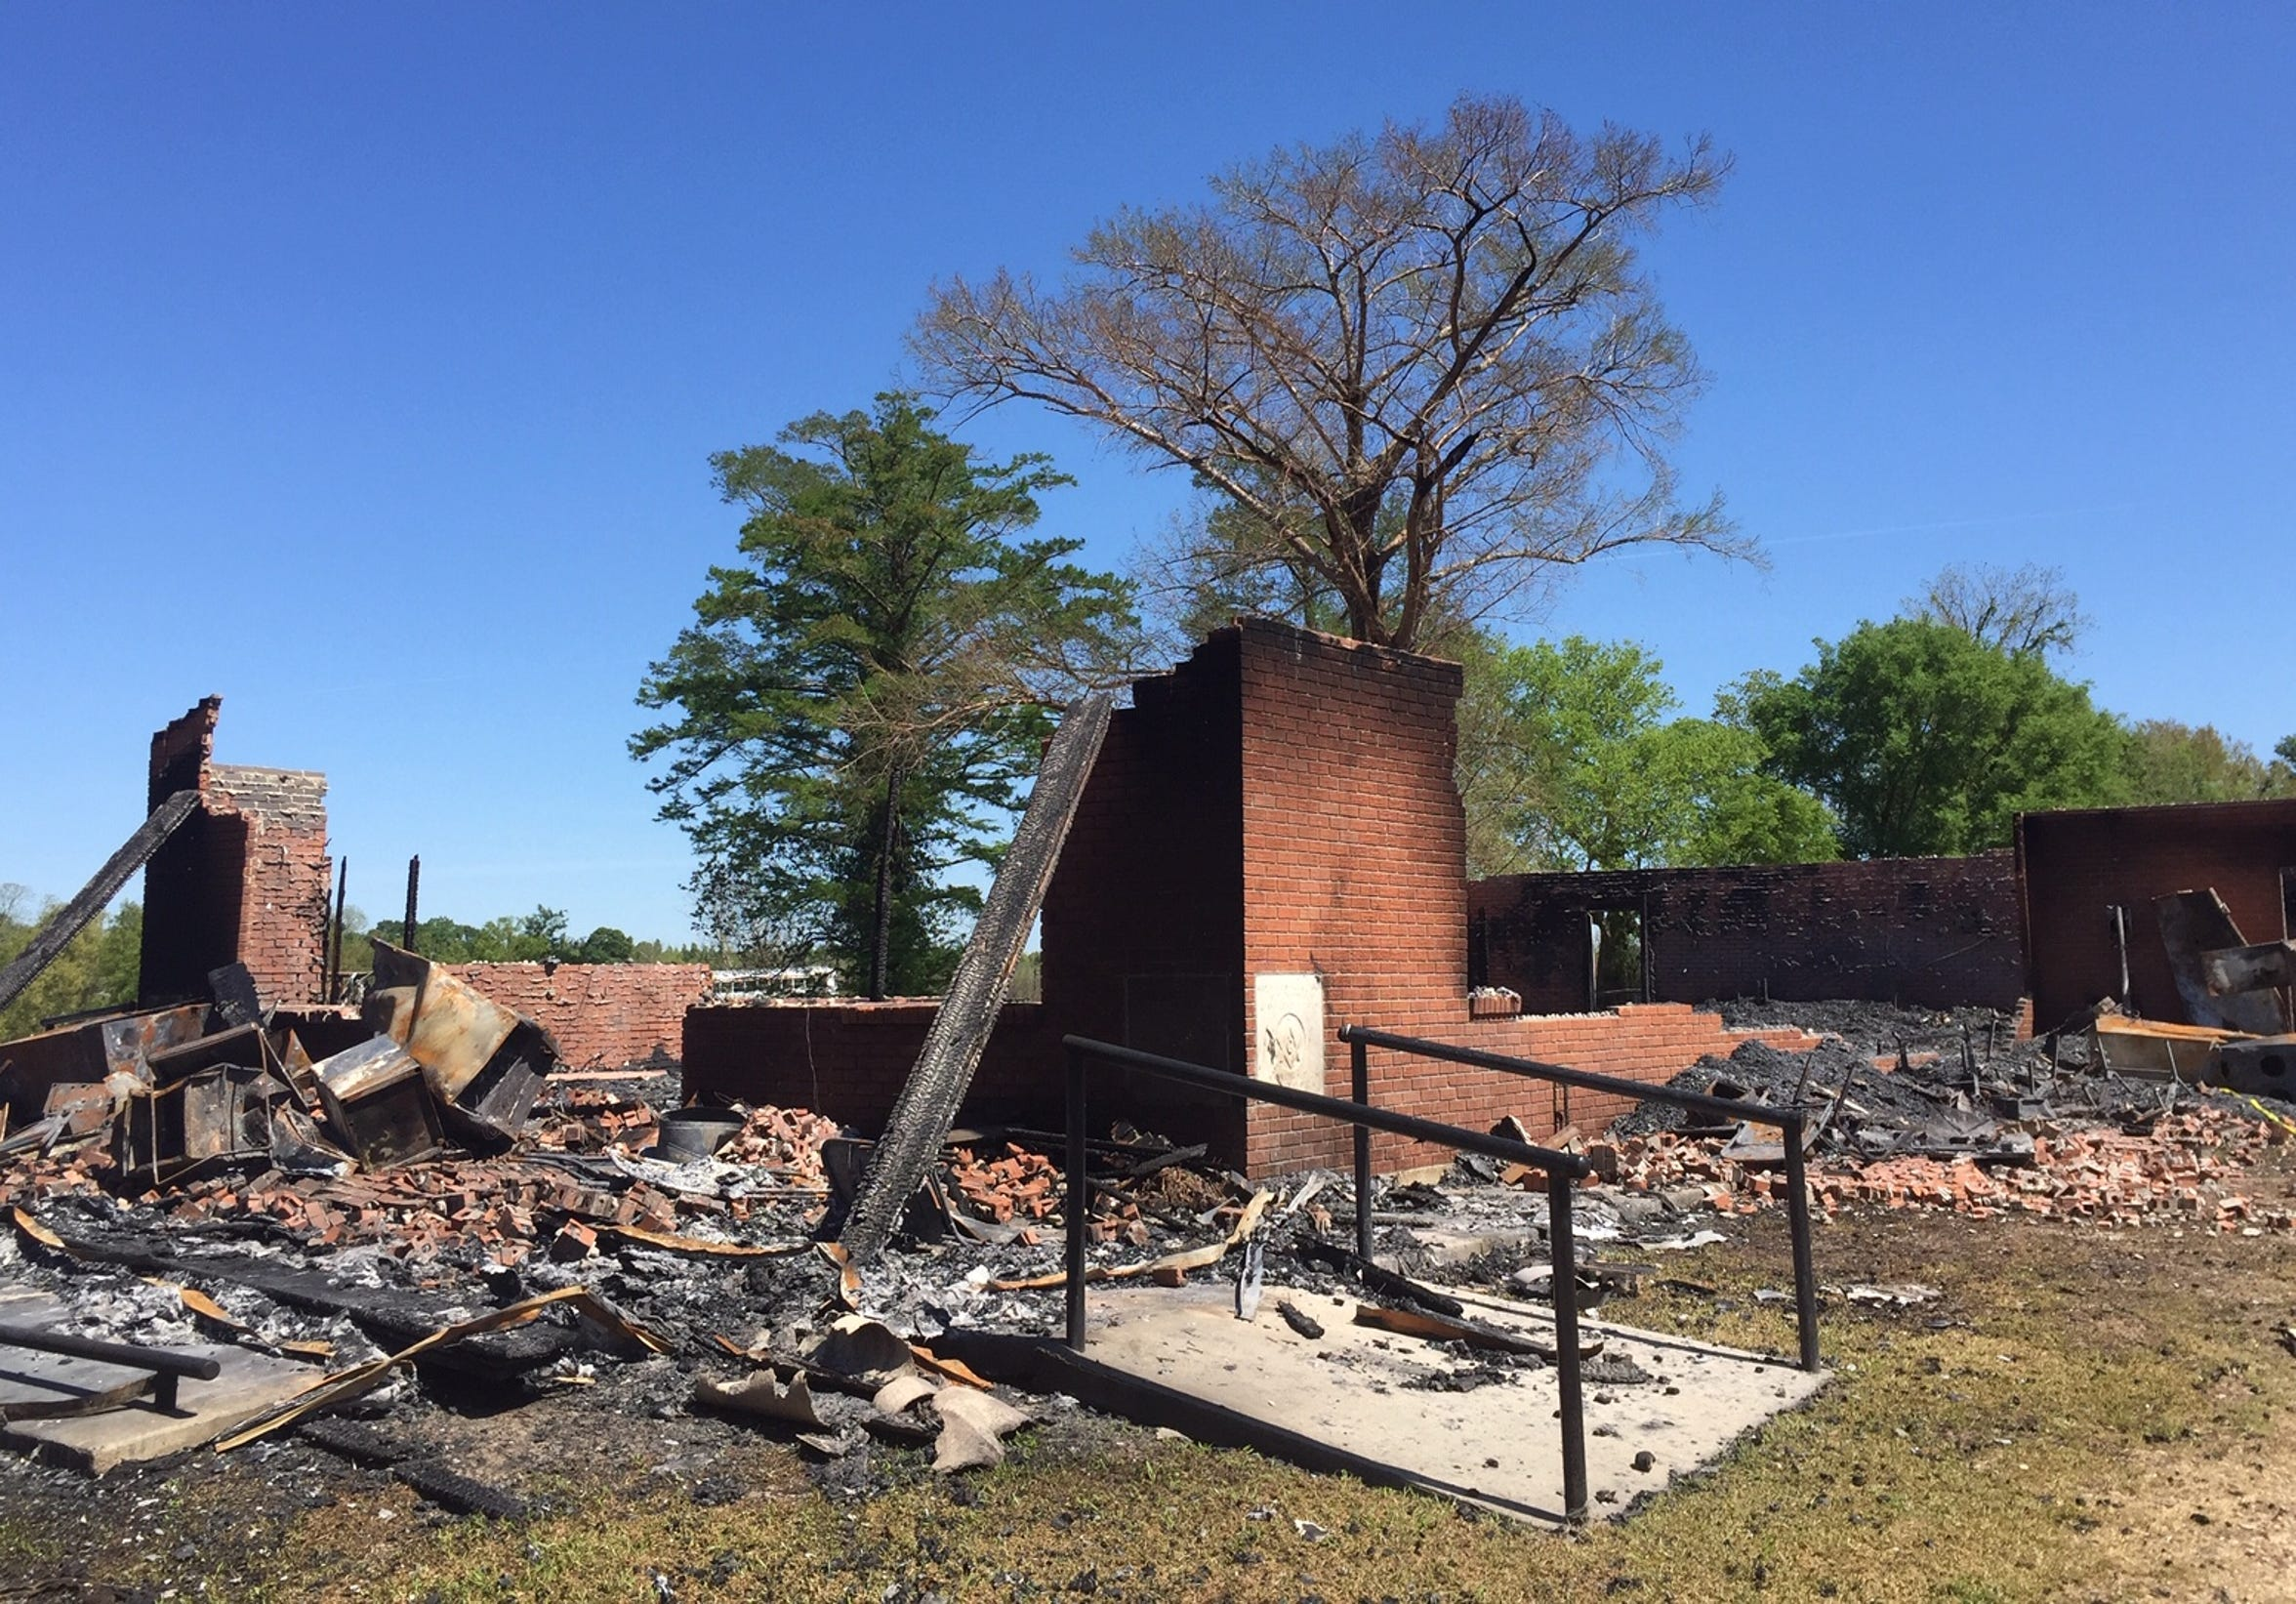 St. Mary Baptist Church in Port Barre was destroyed by a fire on March 26, 2019. Investigators are looking for possible links to a April 2 fire at nearby Greater Union Baptist Church in Opelousas.